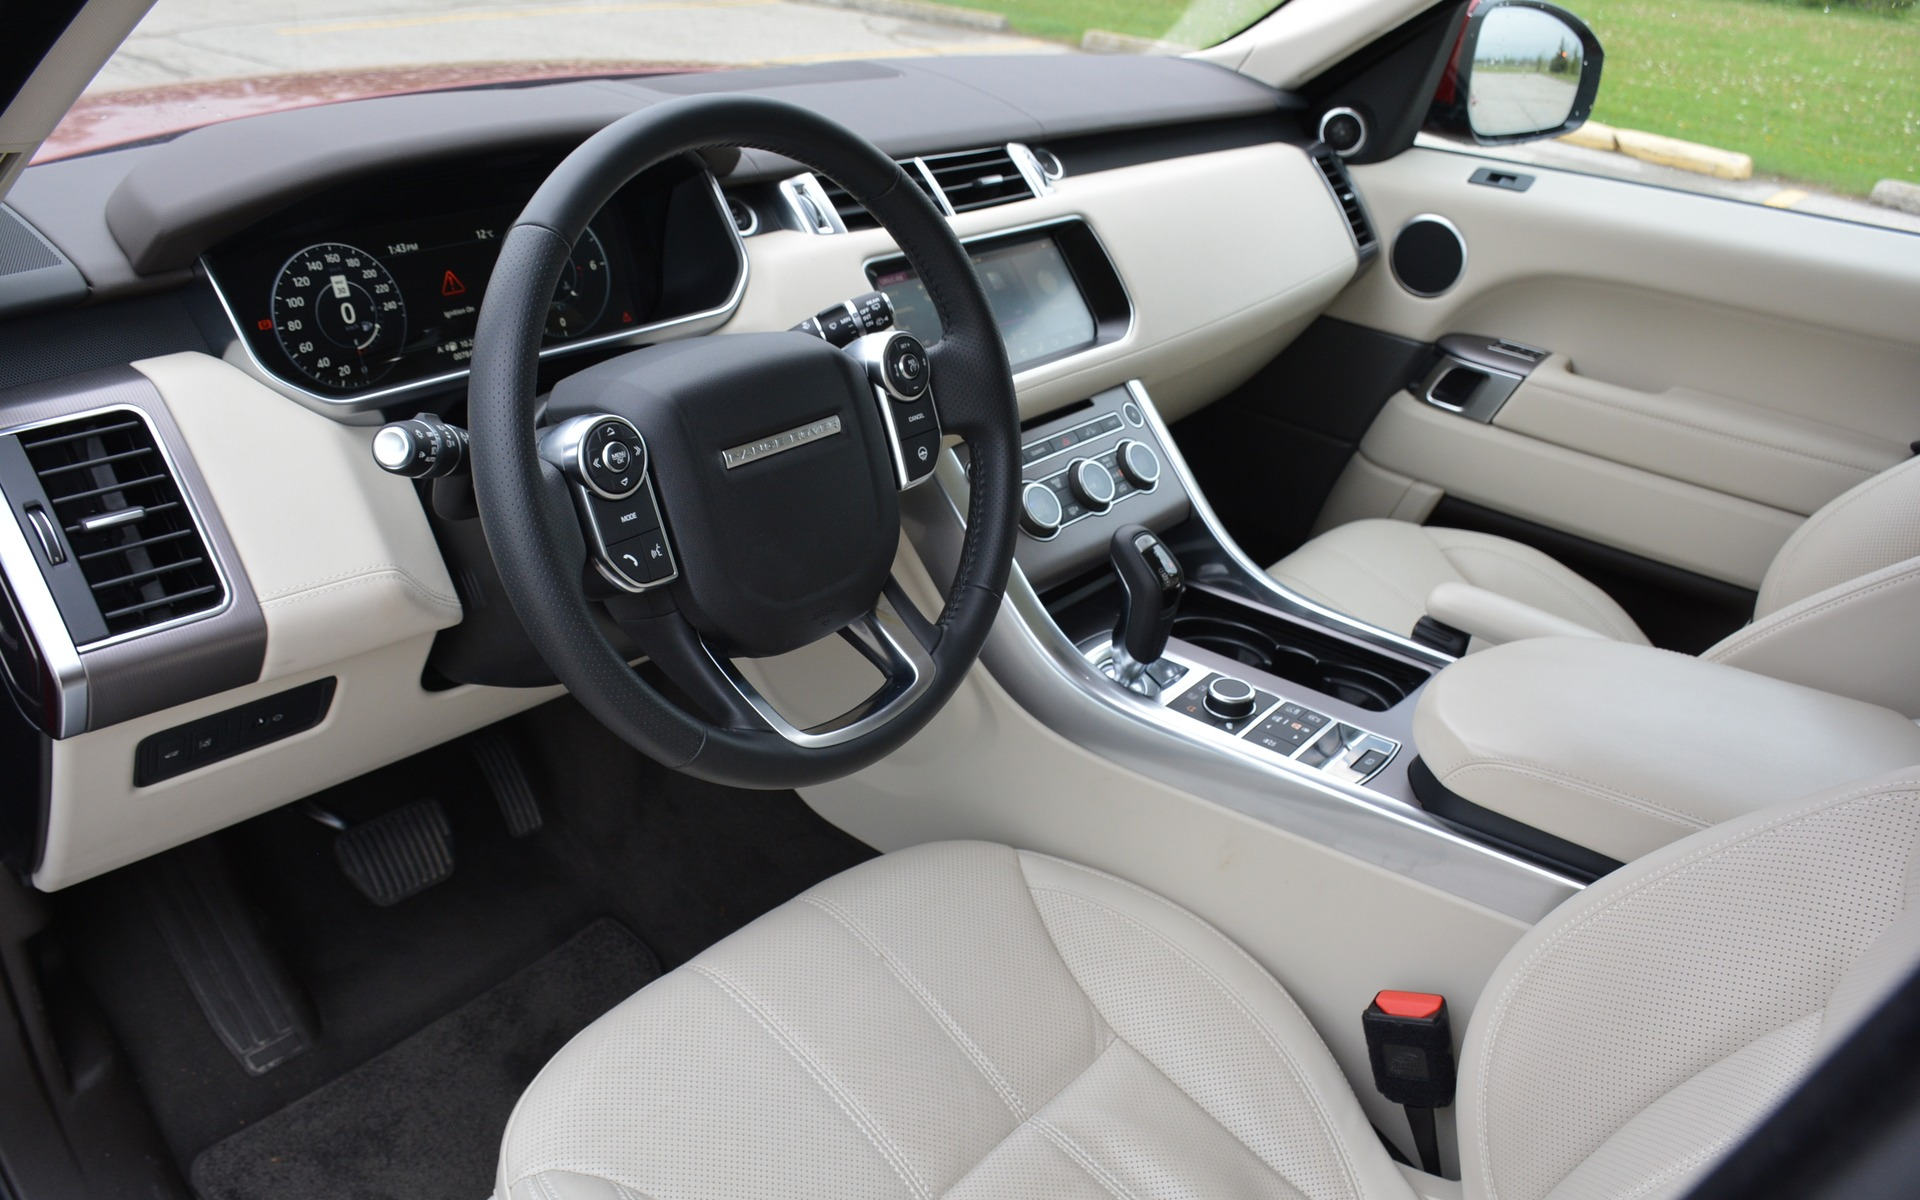 2017 Range Rover Sport HSE Td6 Less Fuel sipping Same Fun The